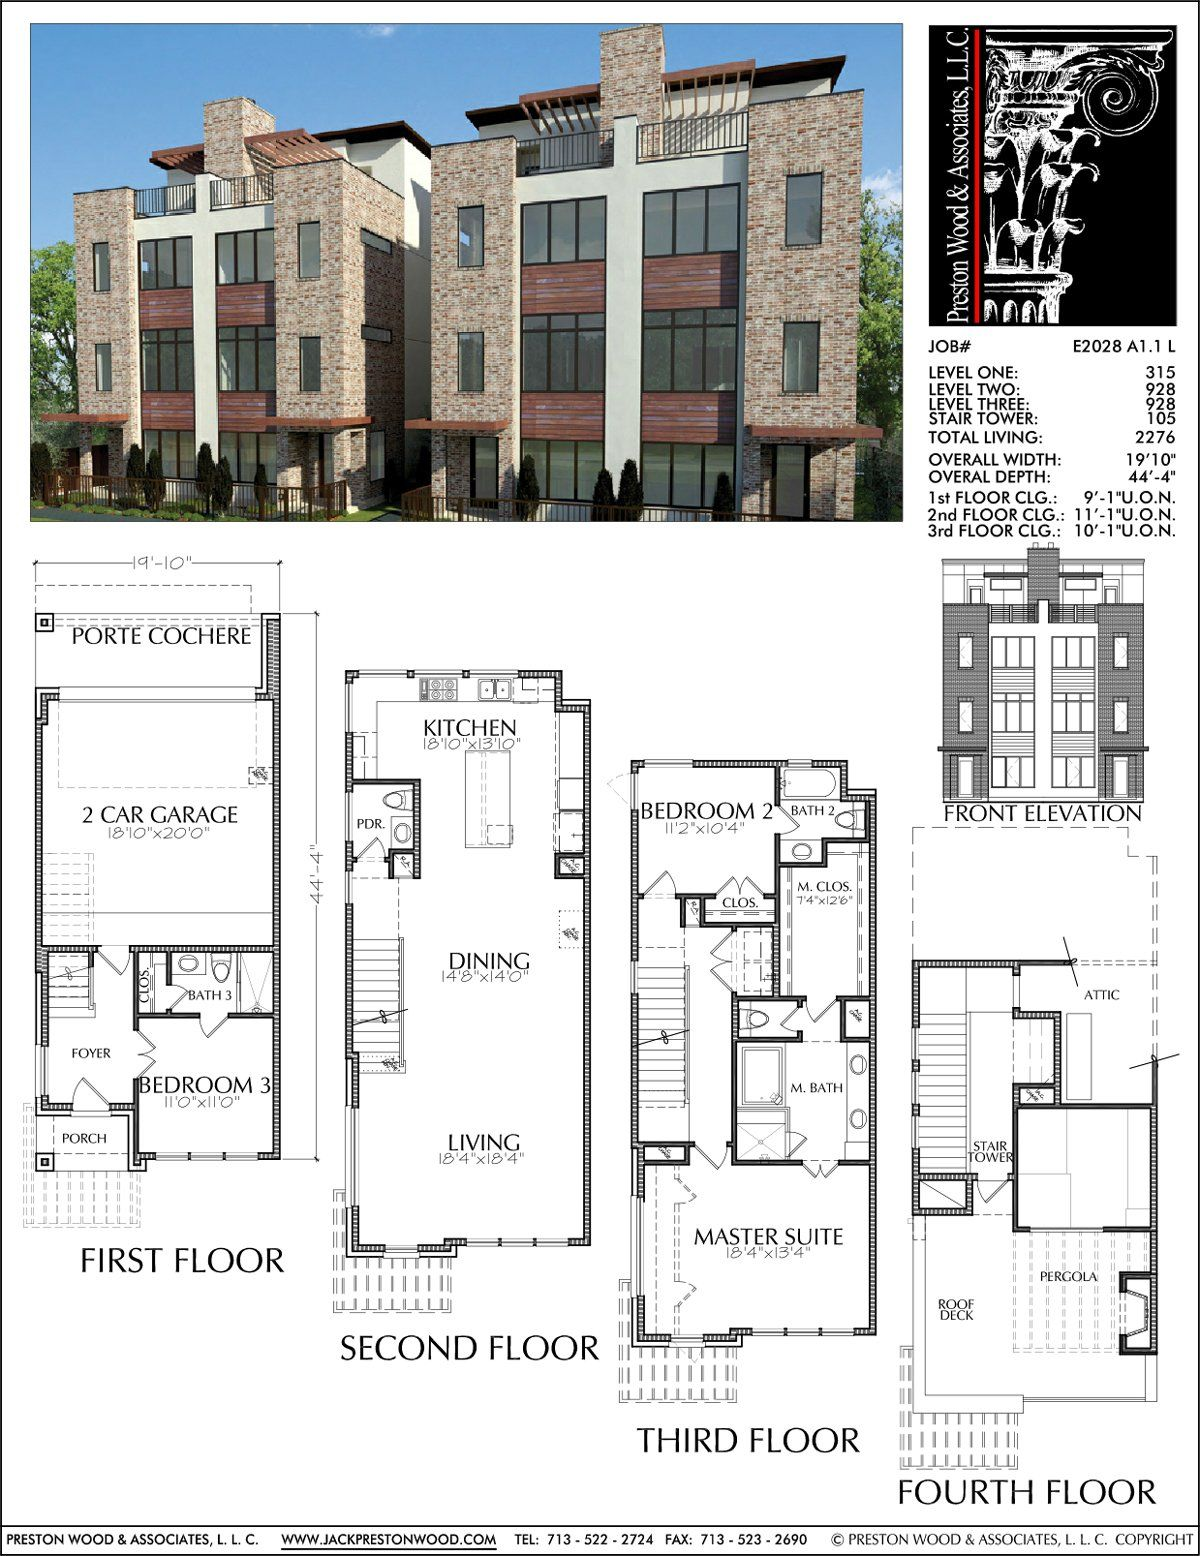 Duplex Townhouse Plan E2028 A1 1 Town House Plans Family House Plans House Plans